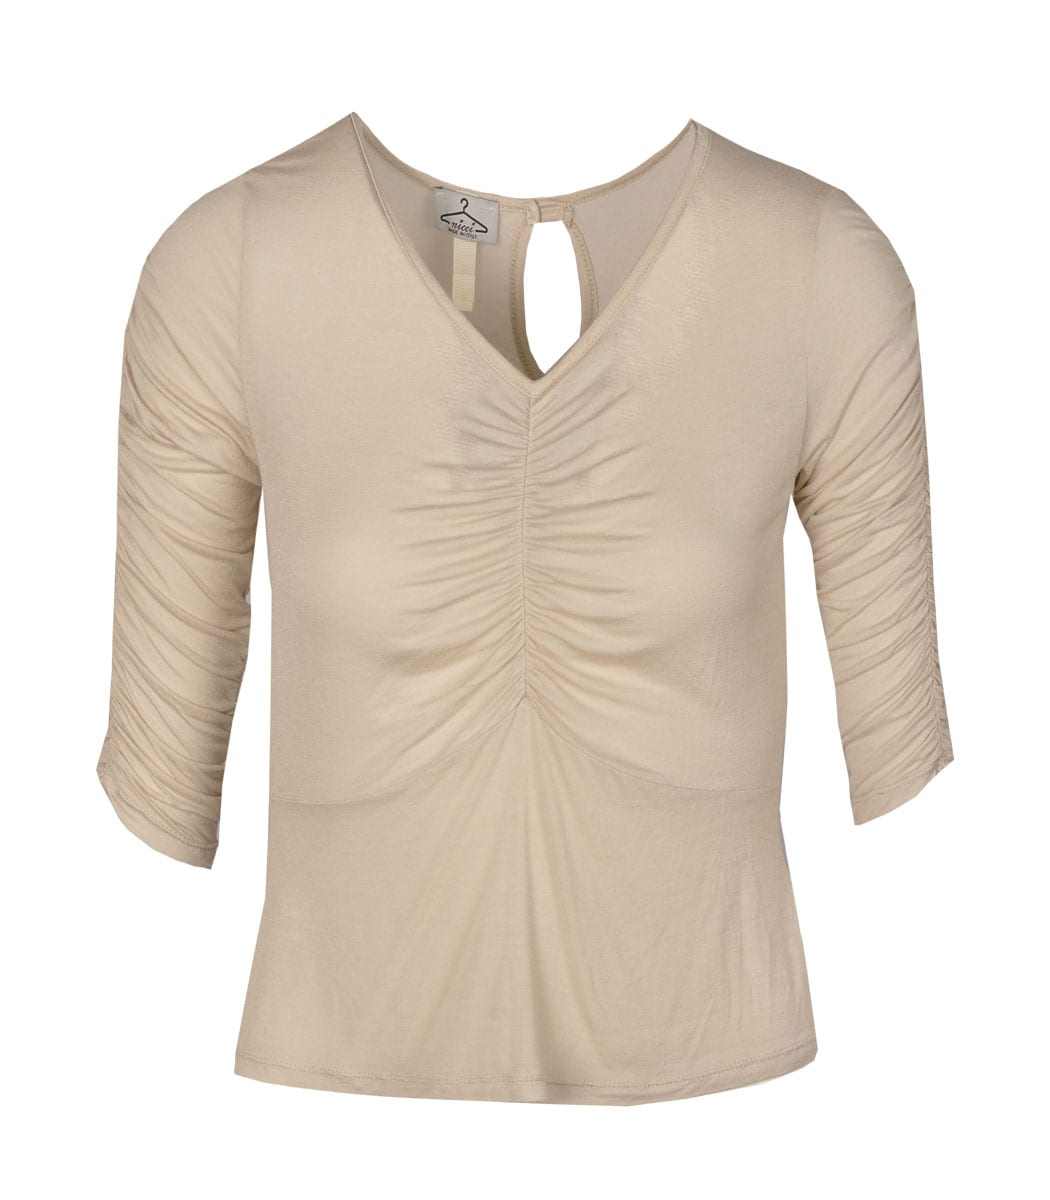 Ruched fitted top